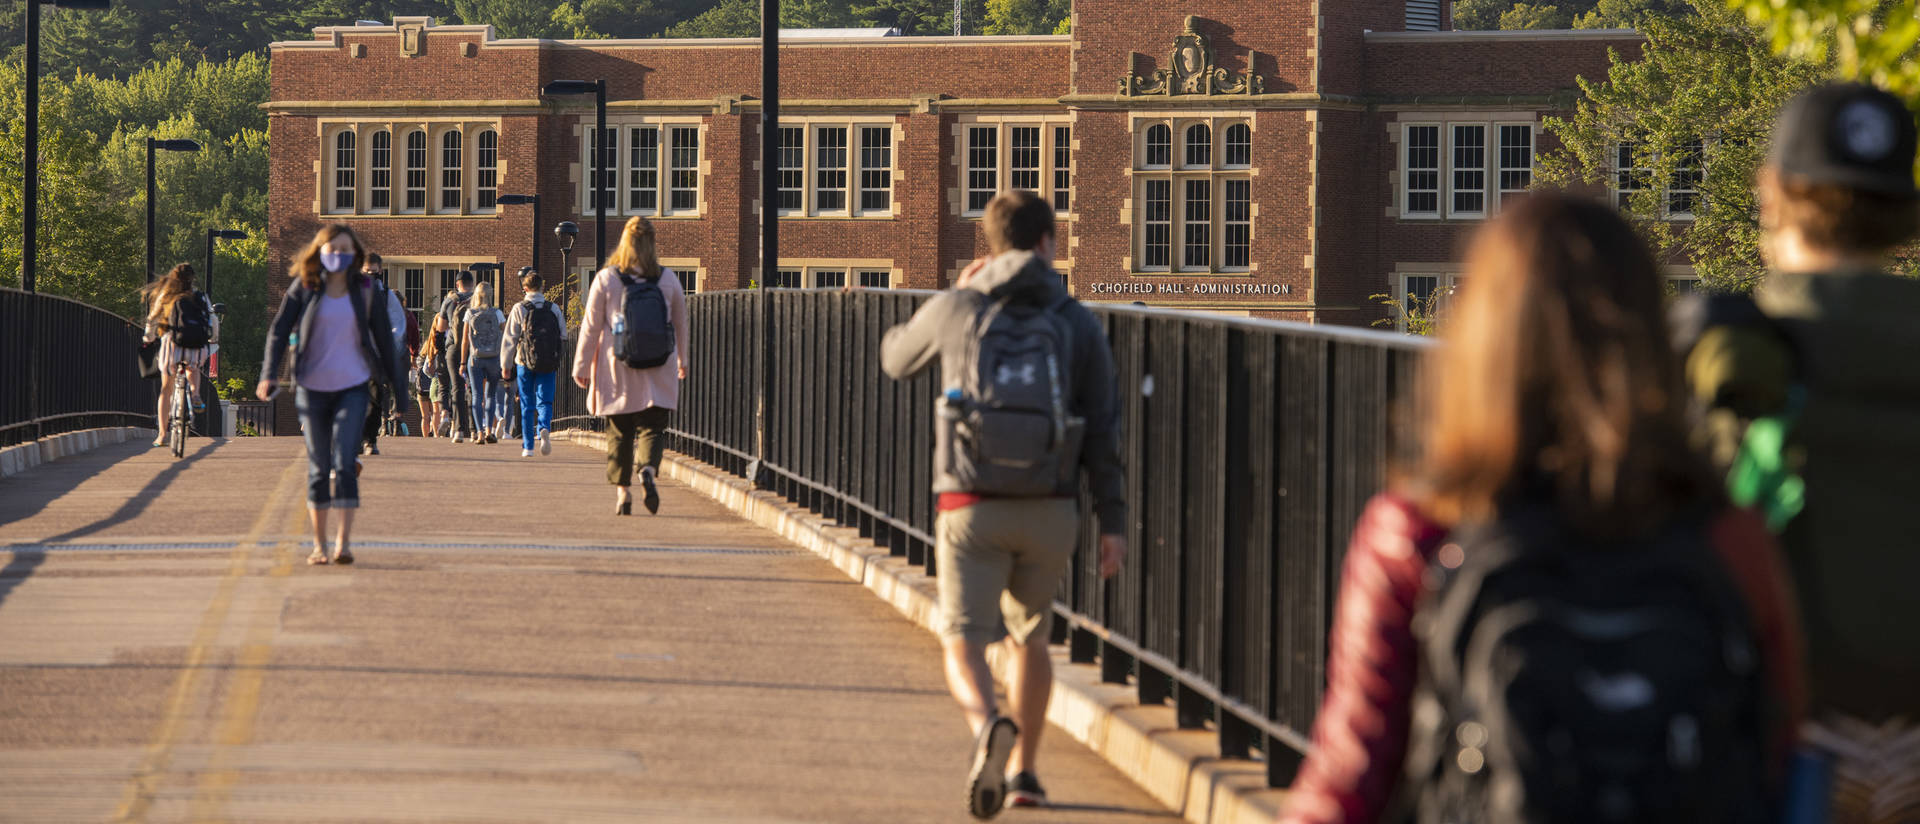 Students walk across footbridge in masks during first day of fall 2020 semester.